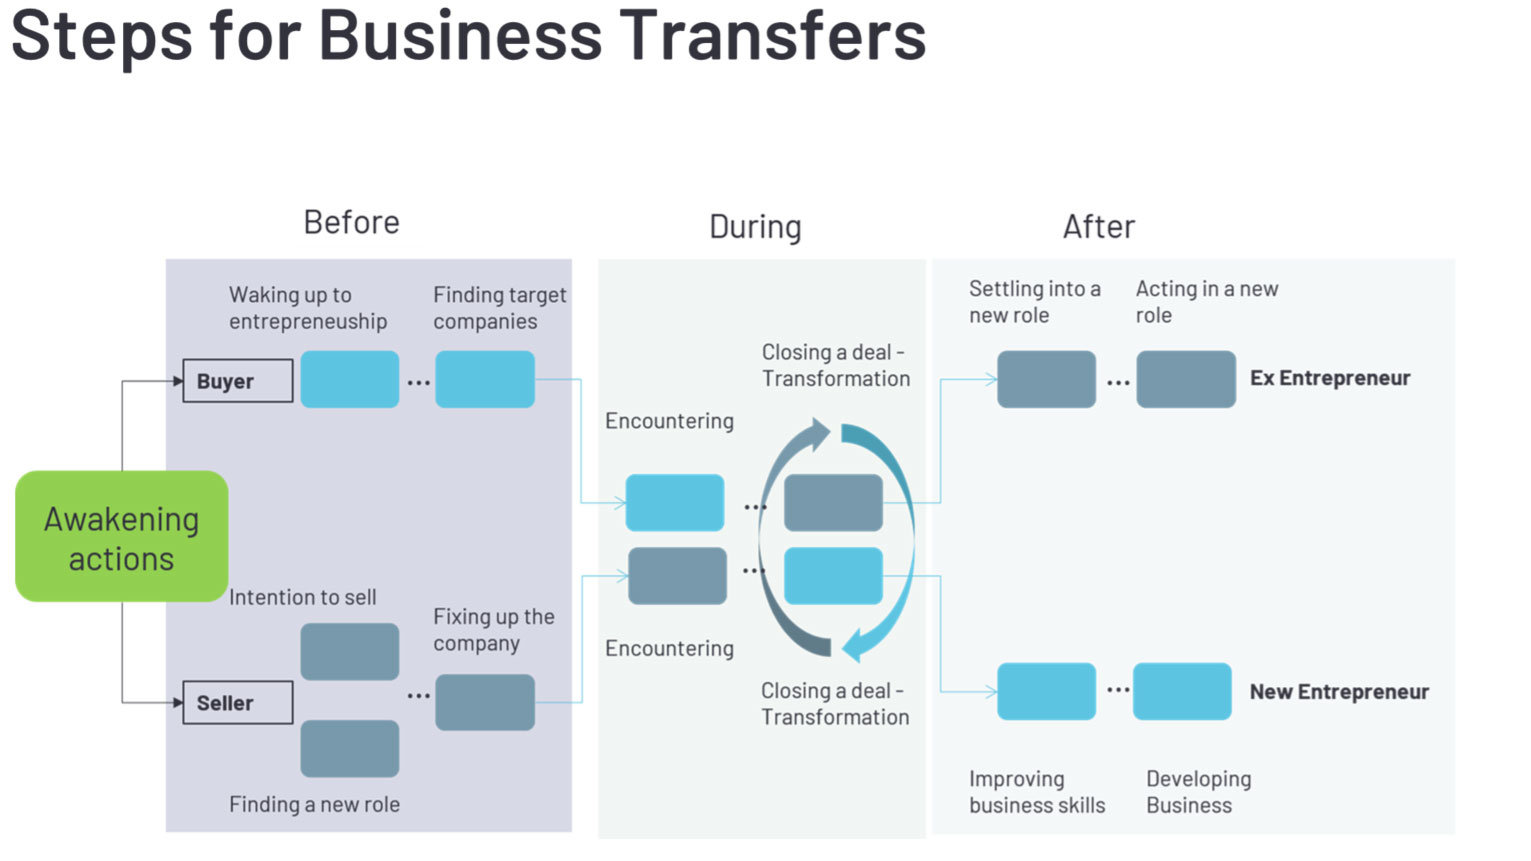 Steps-business-transfers-by-Mika-Haavisto